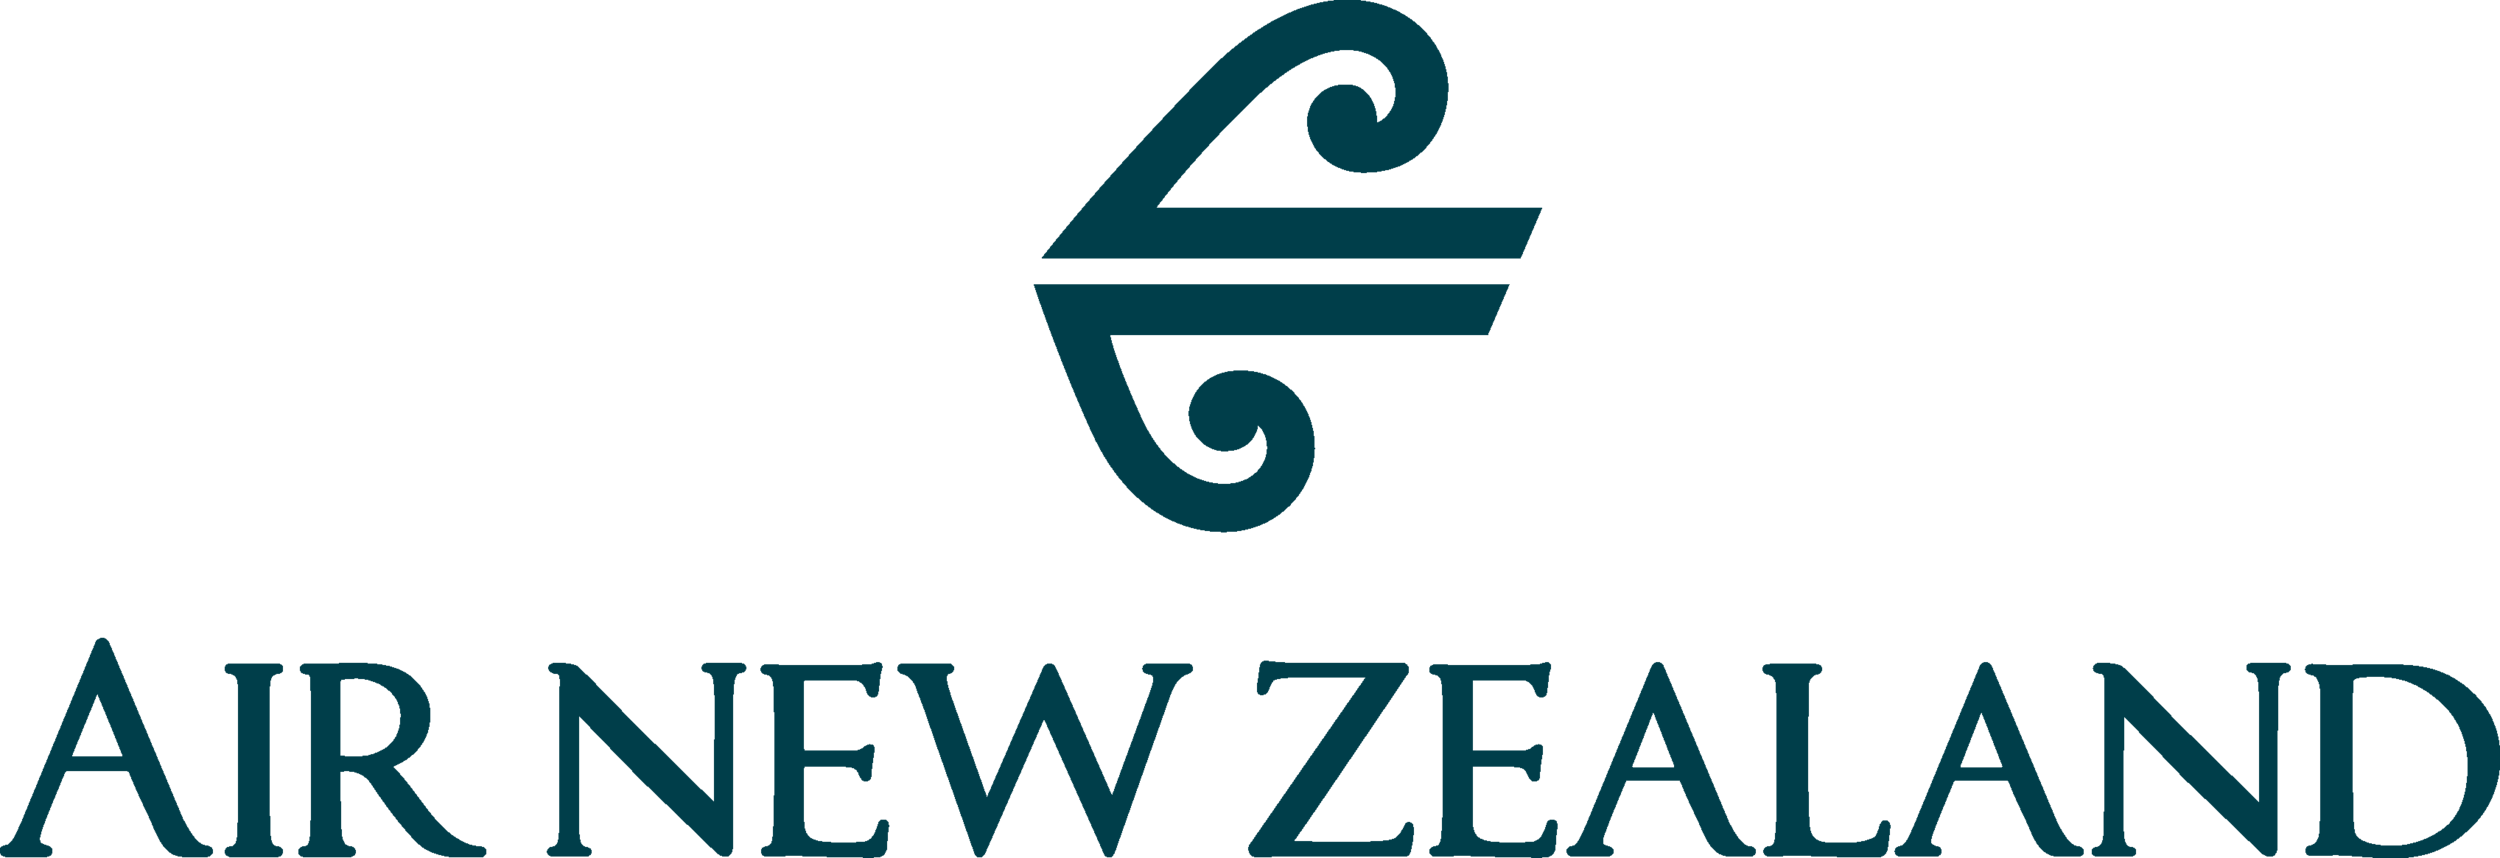 air-new-zealand.png